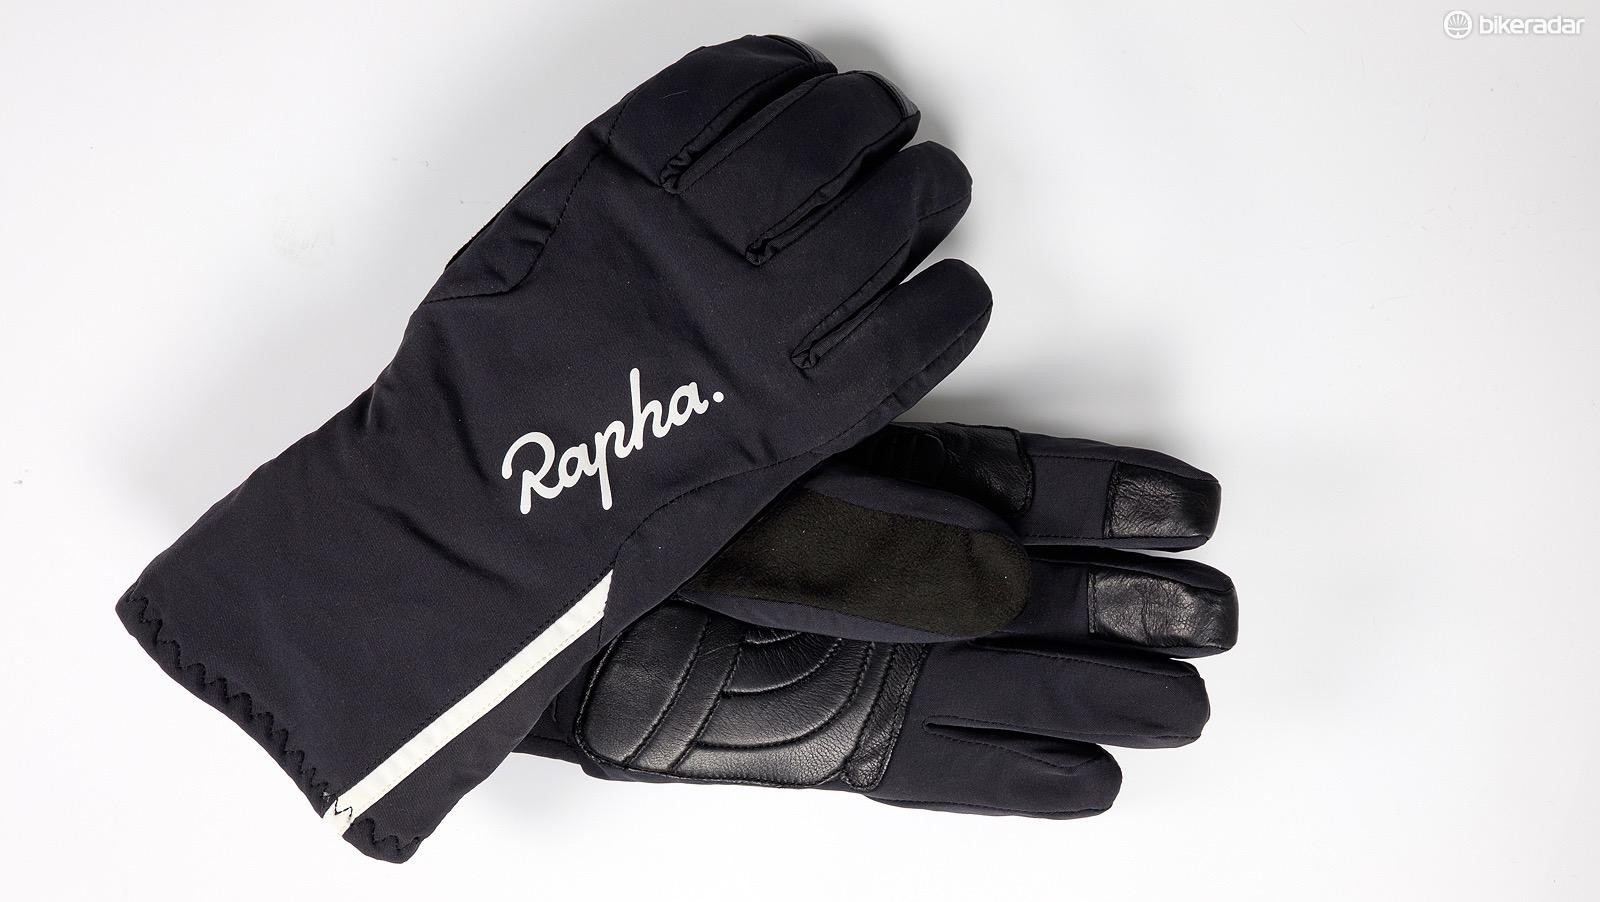 gloves-1-of-6-1510591369531-1fmwn61njf8hs-bd32635